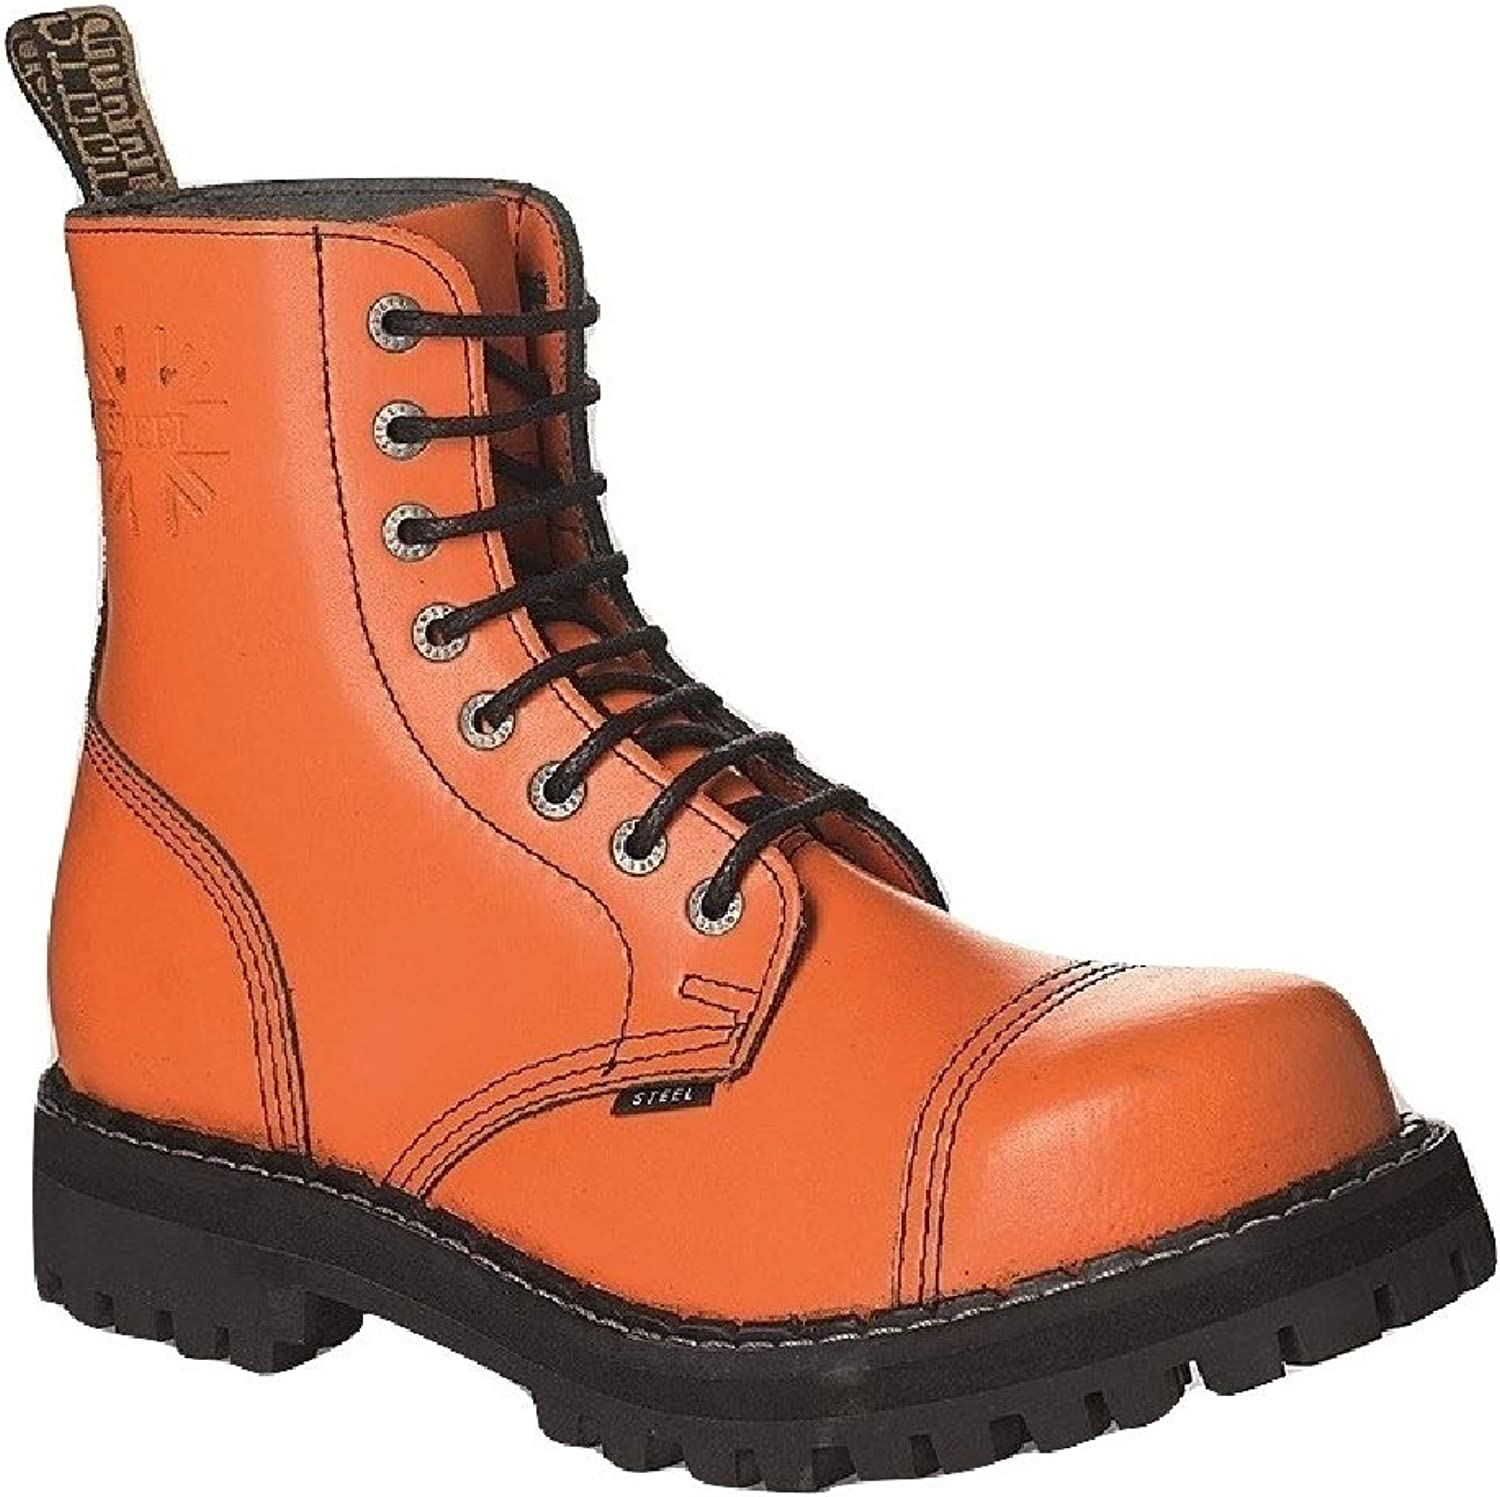 Steel Combat Boots Unisex Men's Ladies Leather orange 8 Eyelets Army Punk Toe Cap